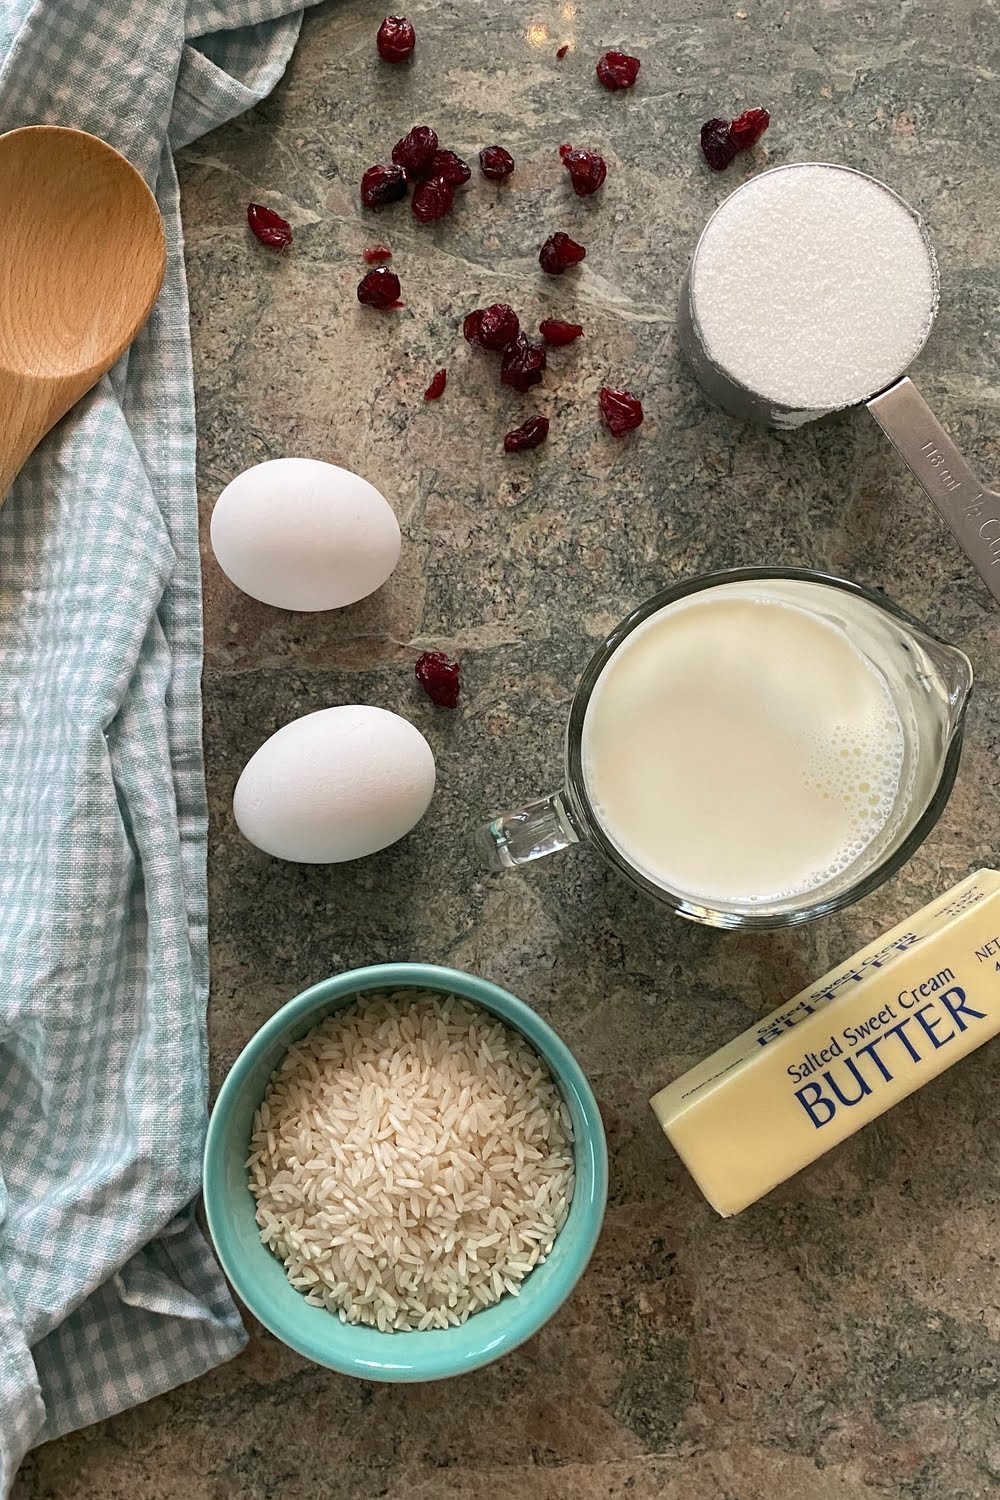 grain, whole milk, butter, eggs, sugar and dried cranberries for creamy dessert